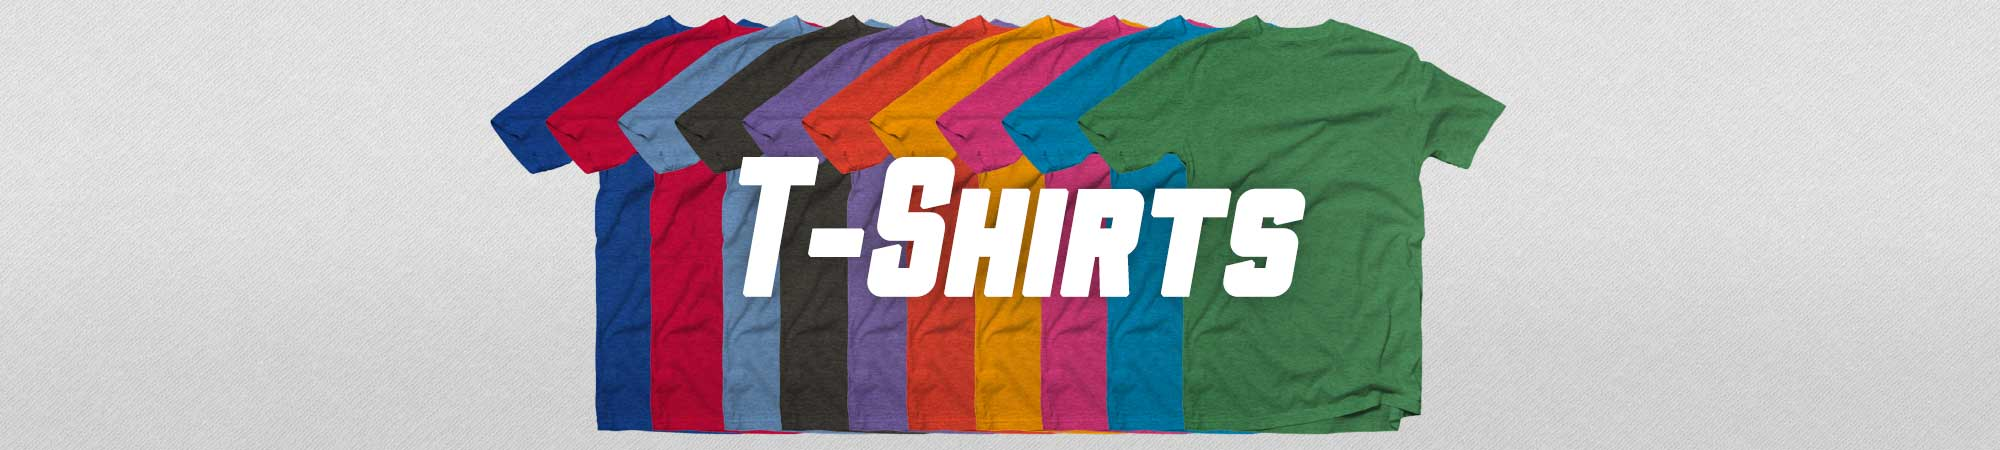 Custom T-Shirts Cheap – T-Shirt Printing – Screen Printed T-Shirts